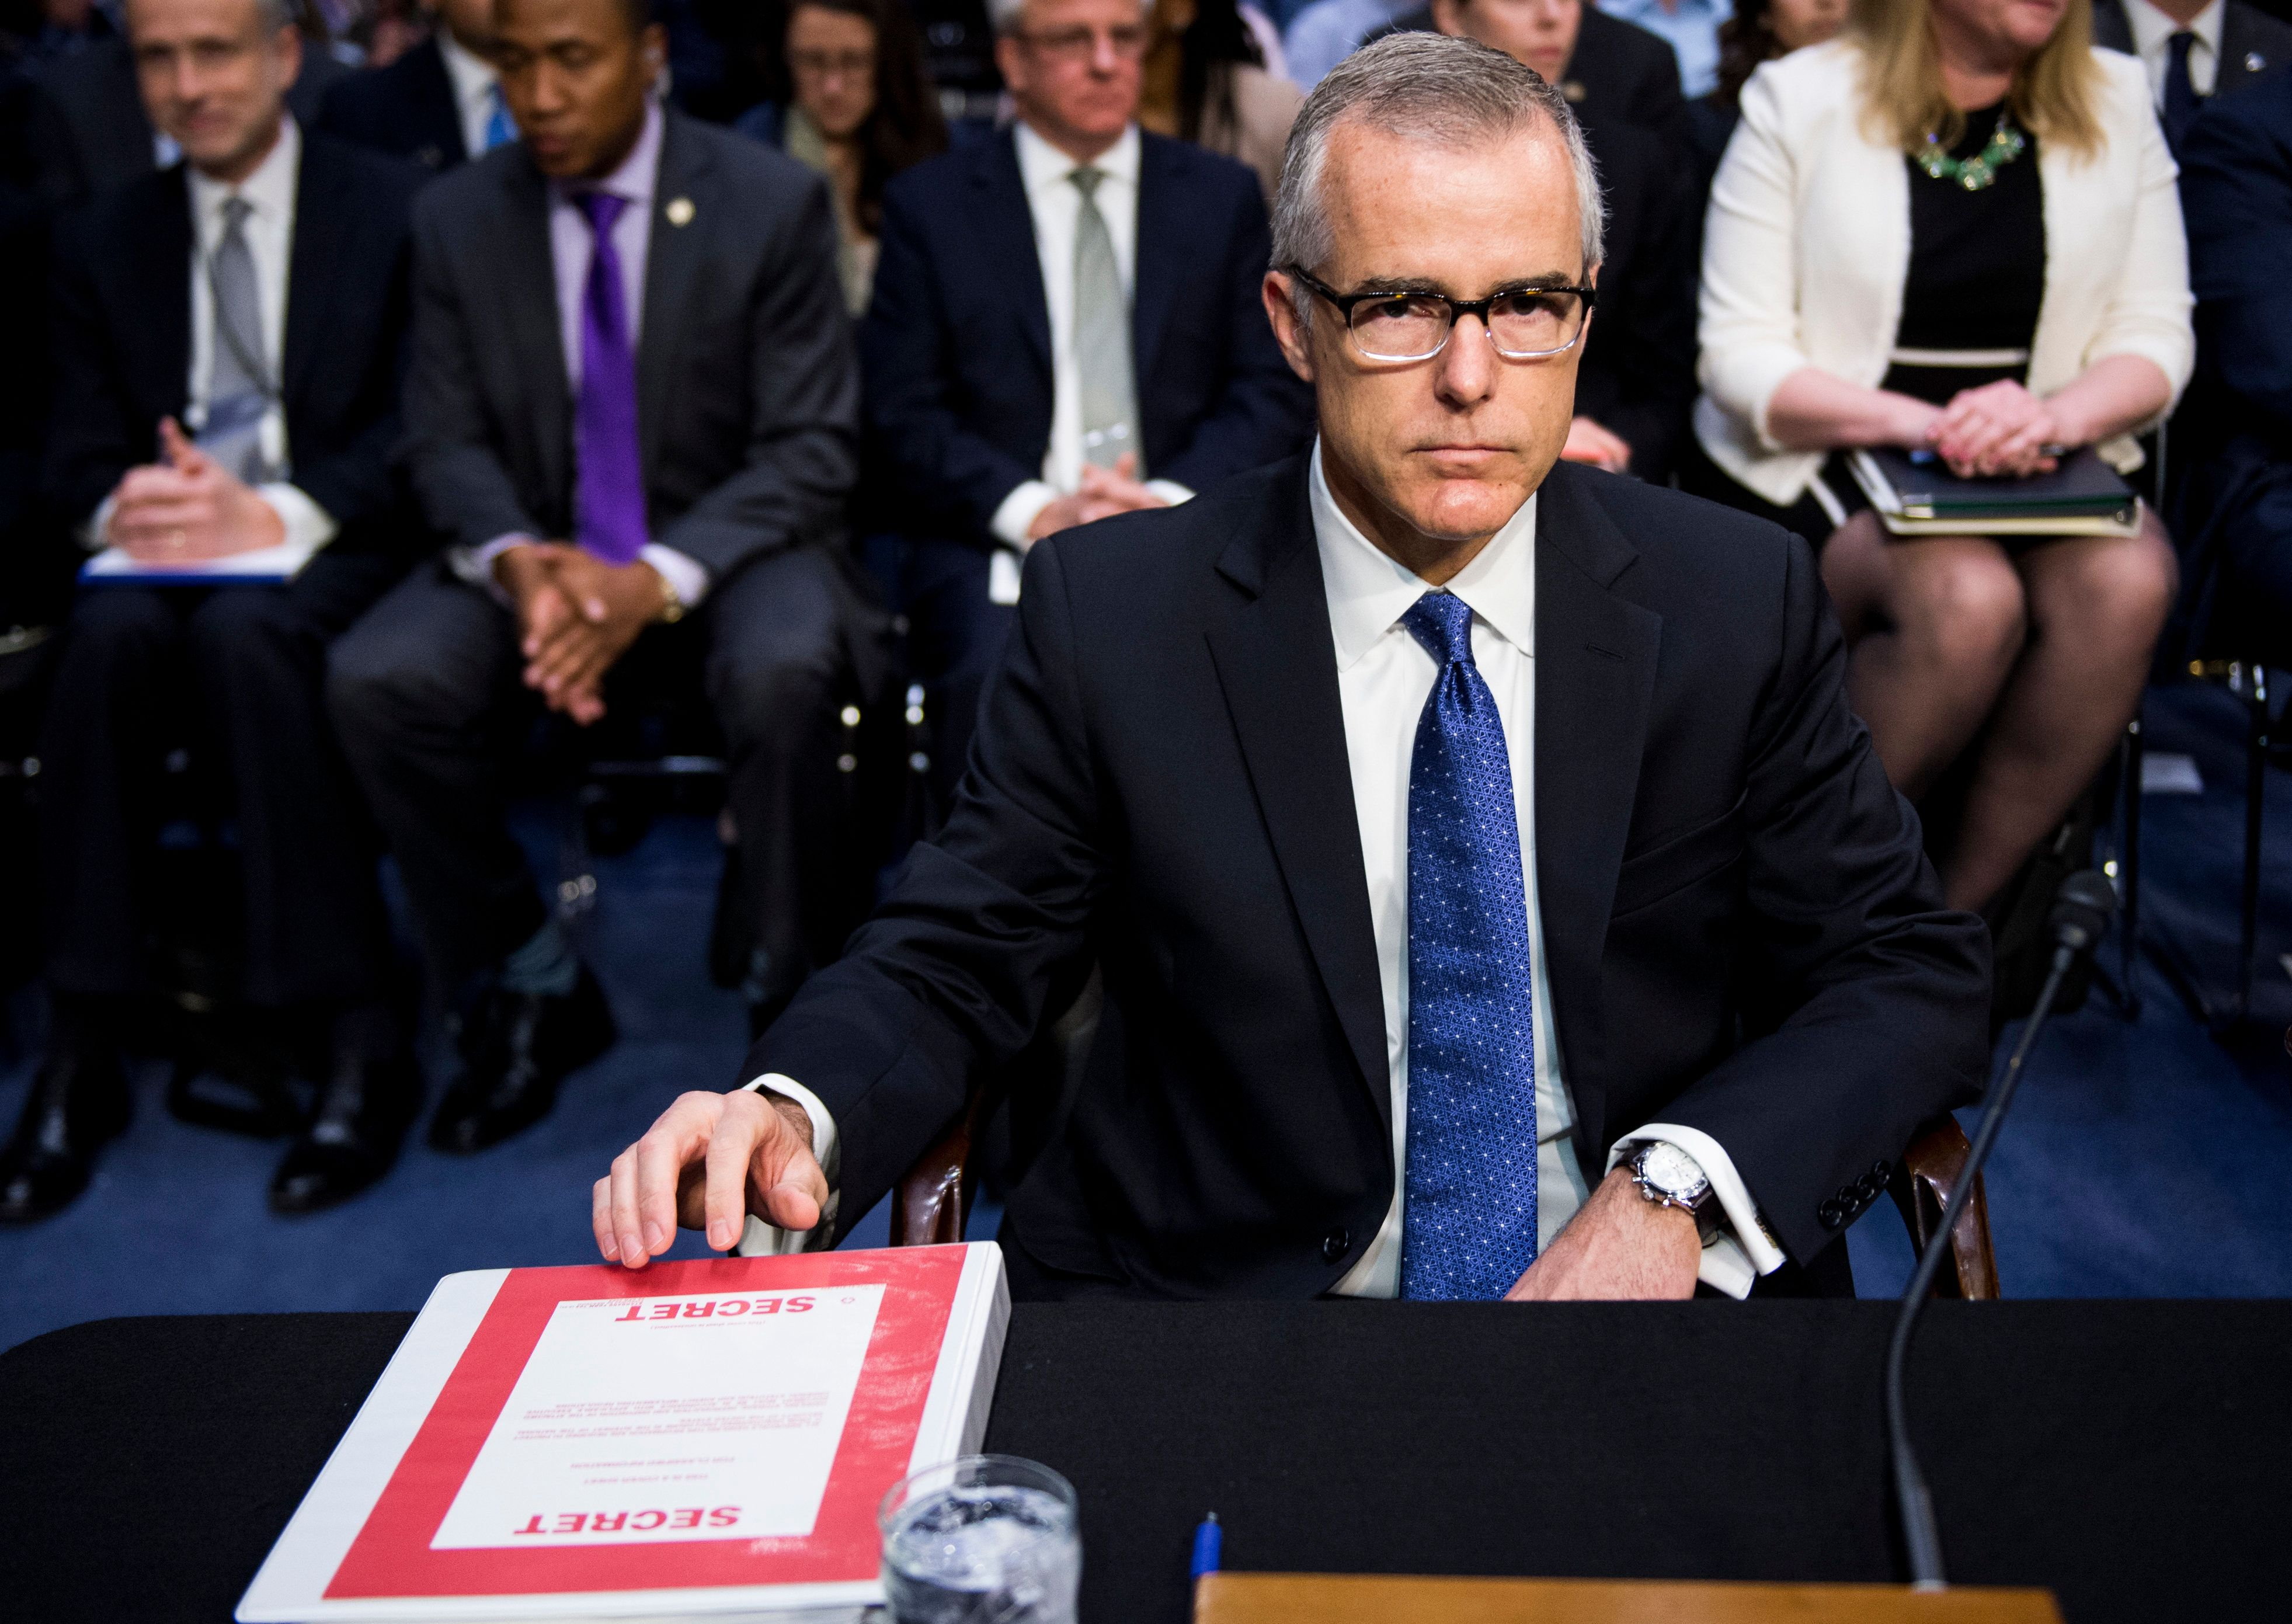 UNITED STATES - MAY 11: Acting FBI Director Andrew McCabe prepares to testify during the Senate (Select) Intelligence Committee hearing on 'World Wide Threats' on Thursday, May 11, 2017. (Photo By Bill Clark/CQ Roll Call)